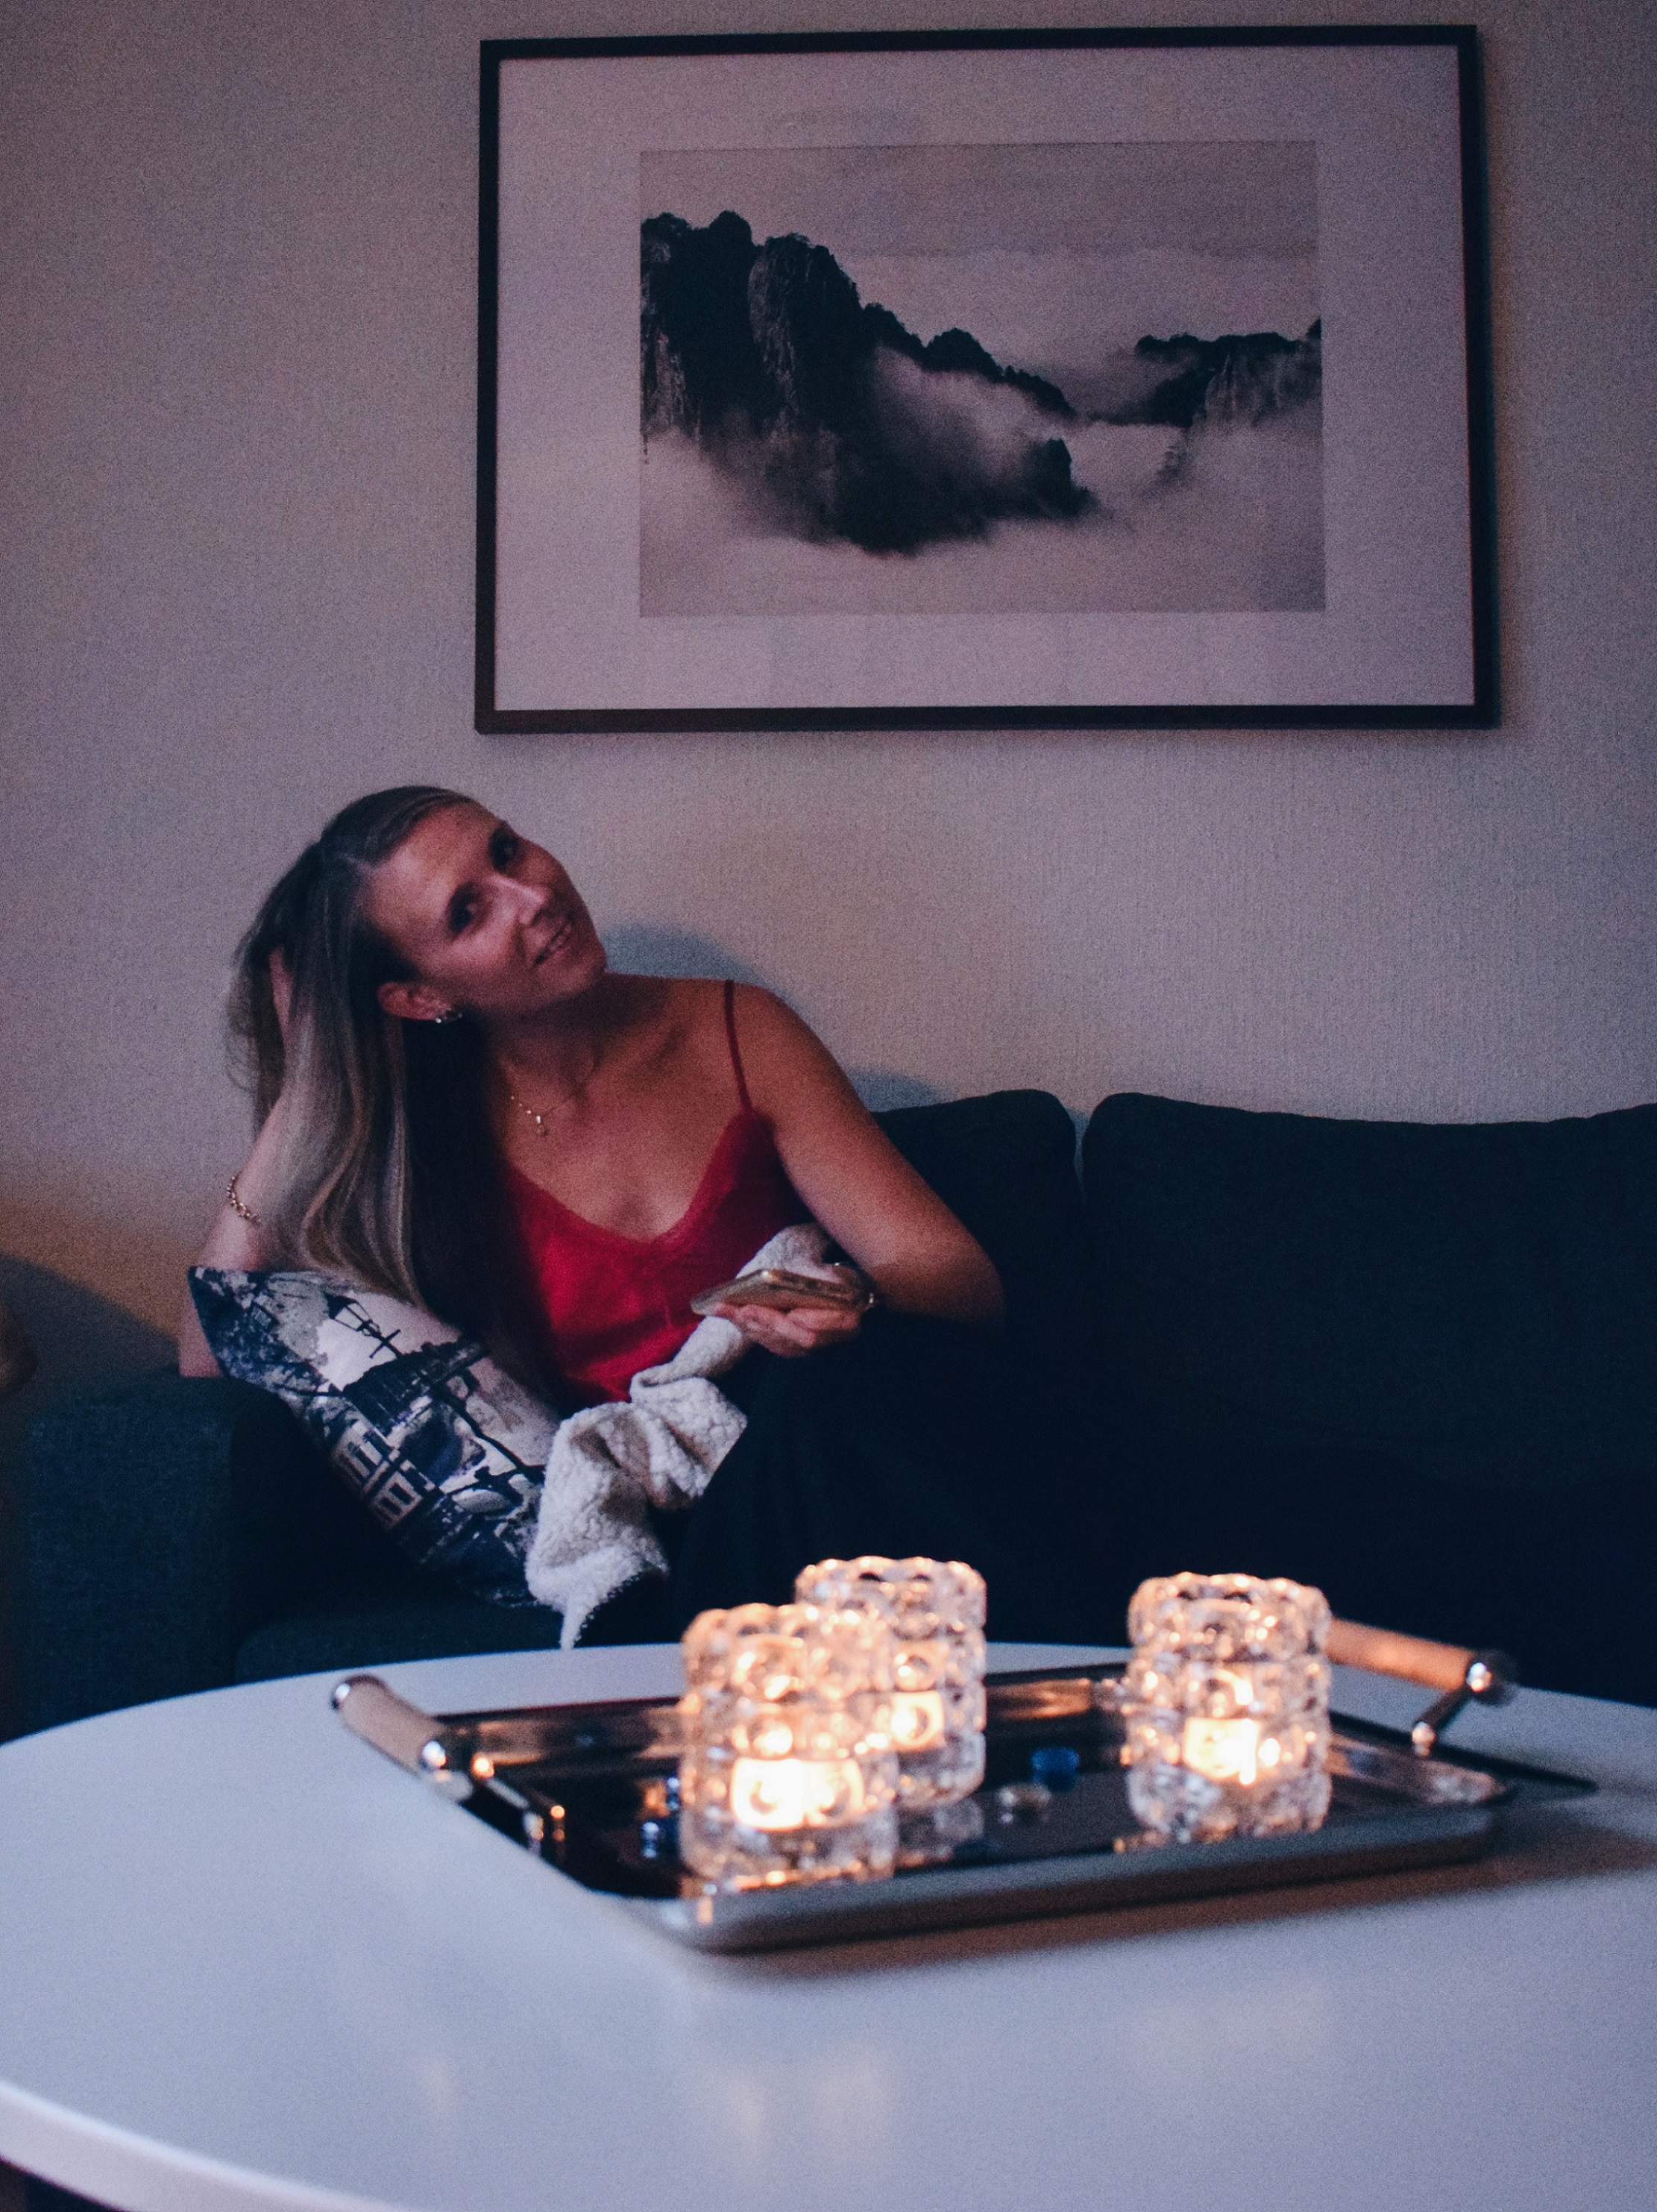 Outlandish blog recipe cosy night home candles darkness relax